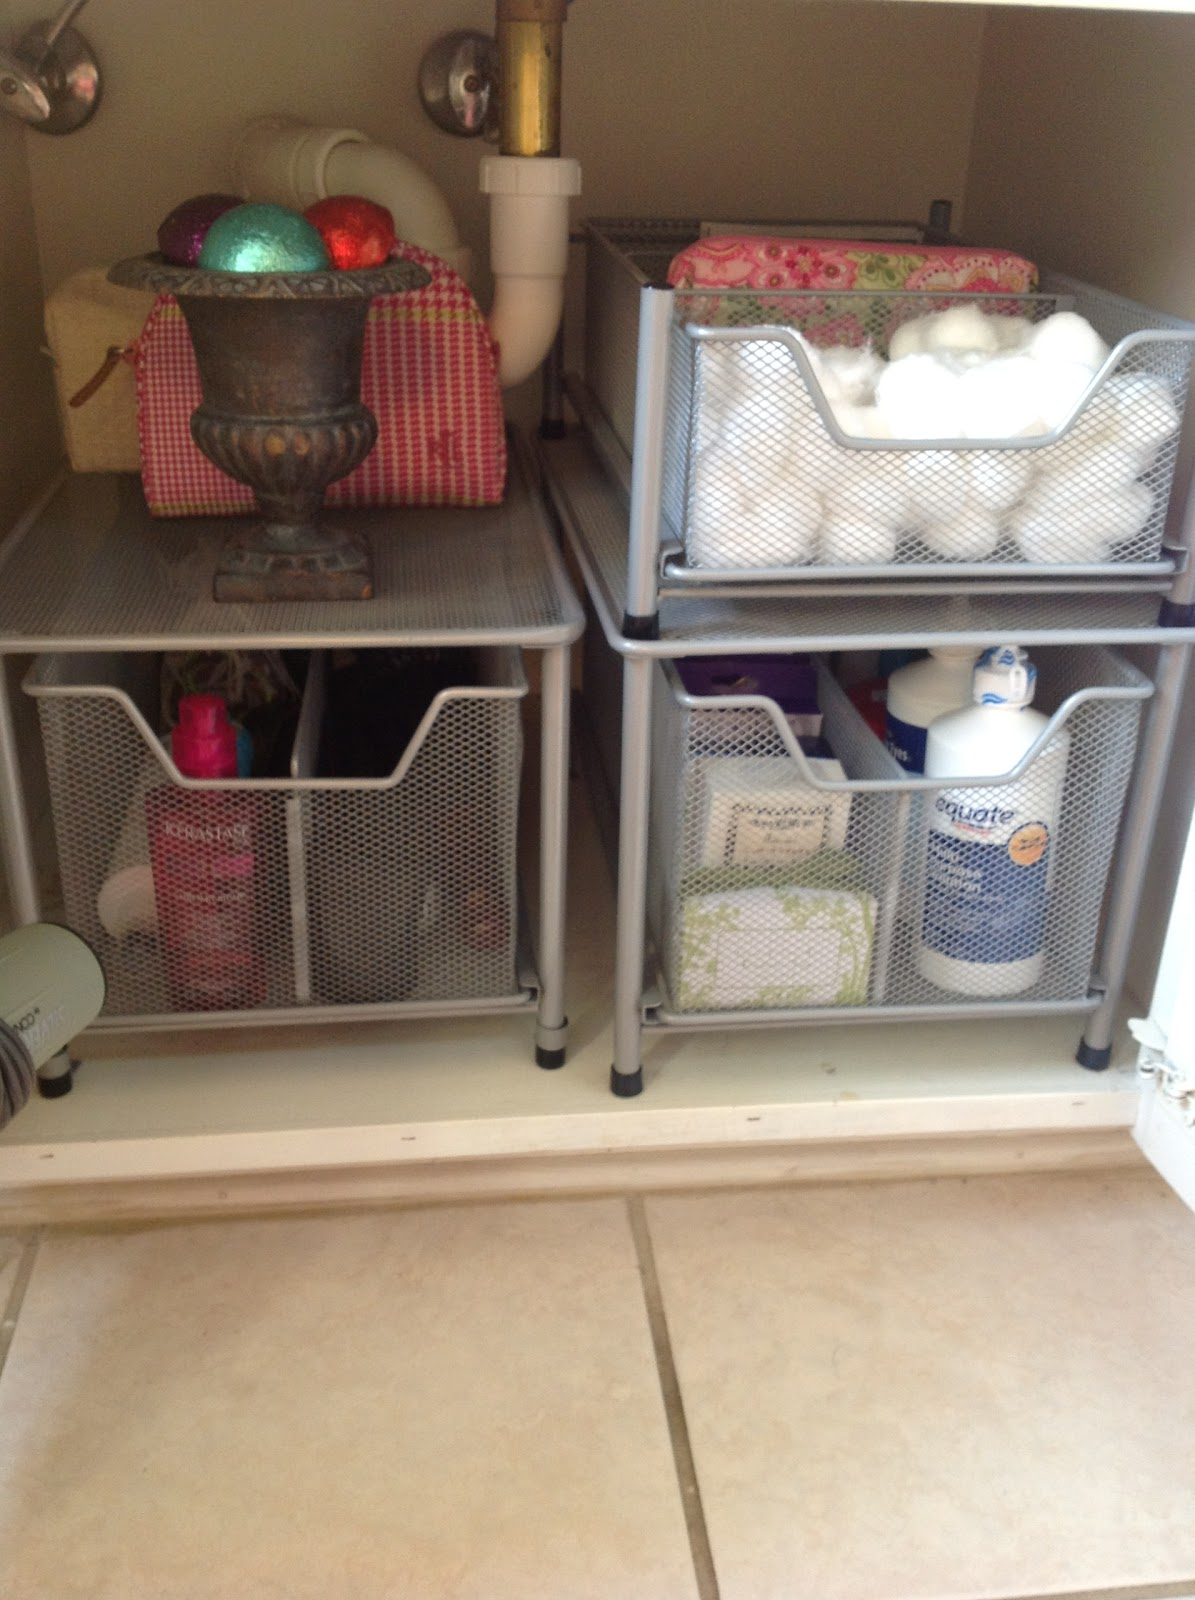 Awesome Today She Is Sharing With Us Her UnderTheBathroomSink Makeover  My Clutter Happened As A Result Of Limited Bathroom Storage We Have A Medicine Cabinet Over The Toilet, And The Area Under The Sink For Storing Our Bathroom